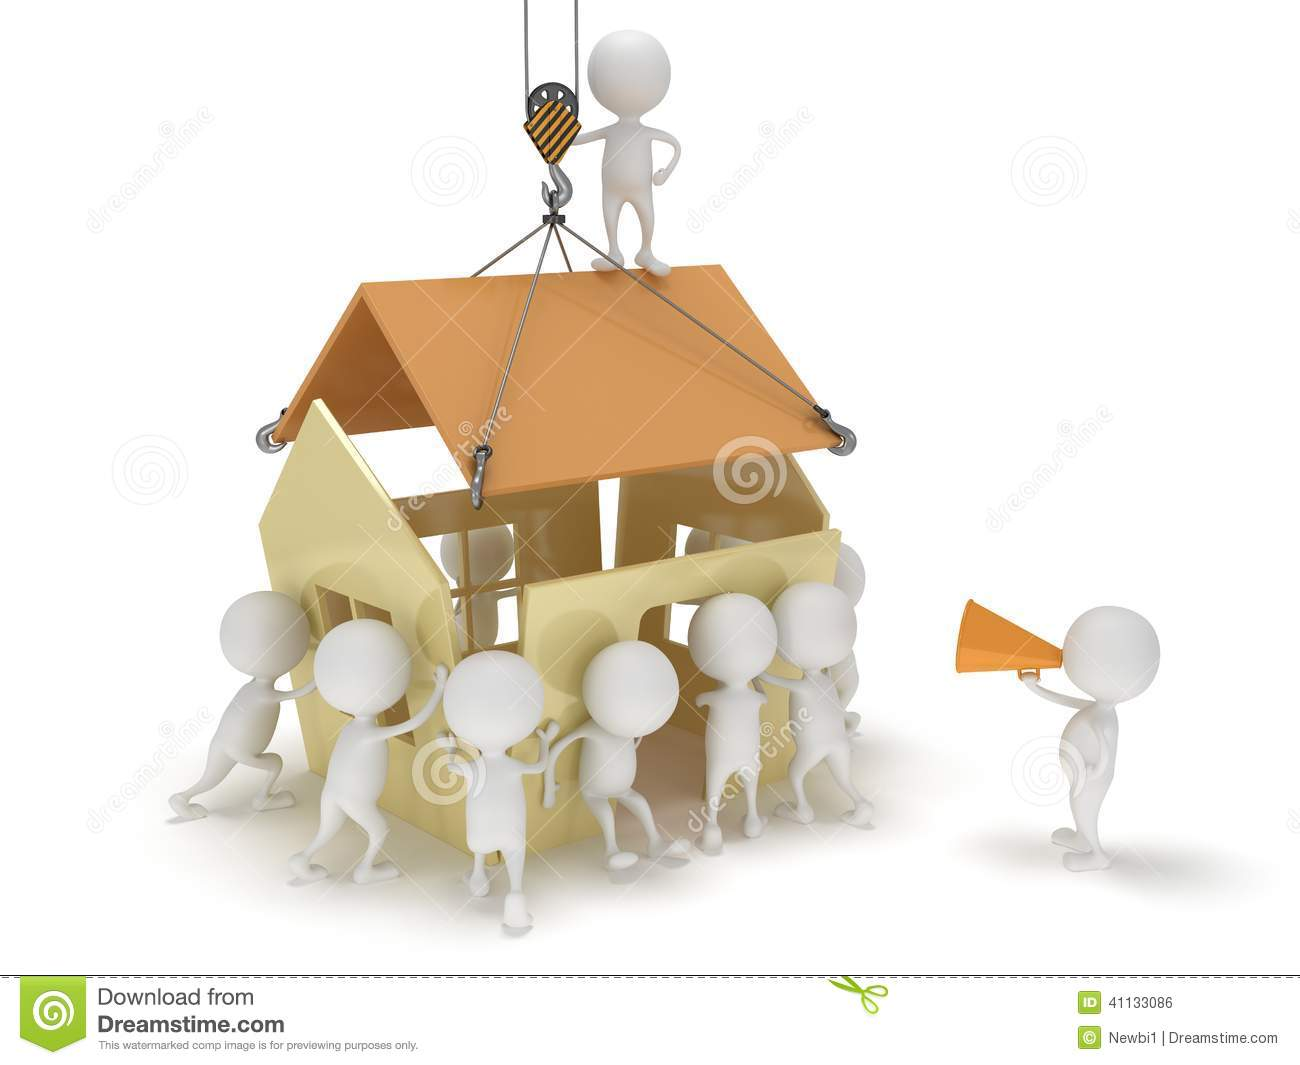 Haus bauen clipart picture free download 3D House/ People Concept... Royalty Free Stock Images - Image ... picture free download